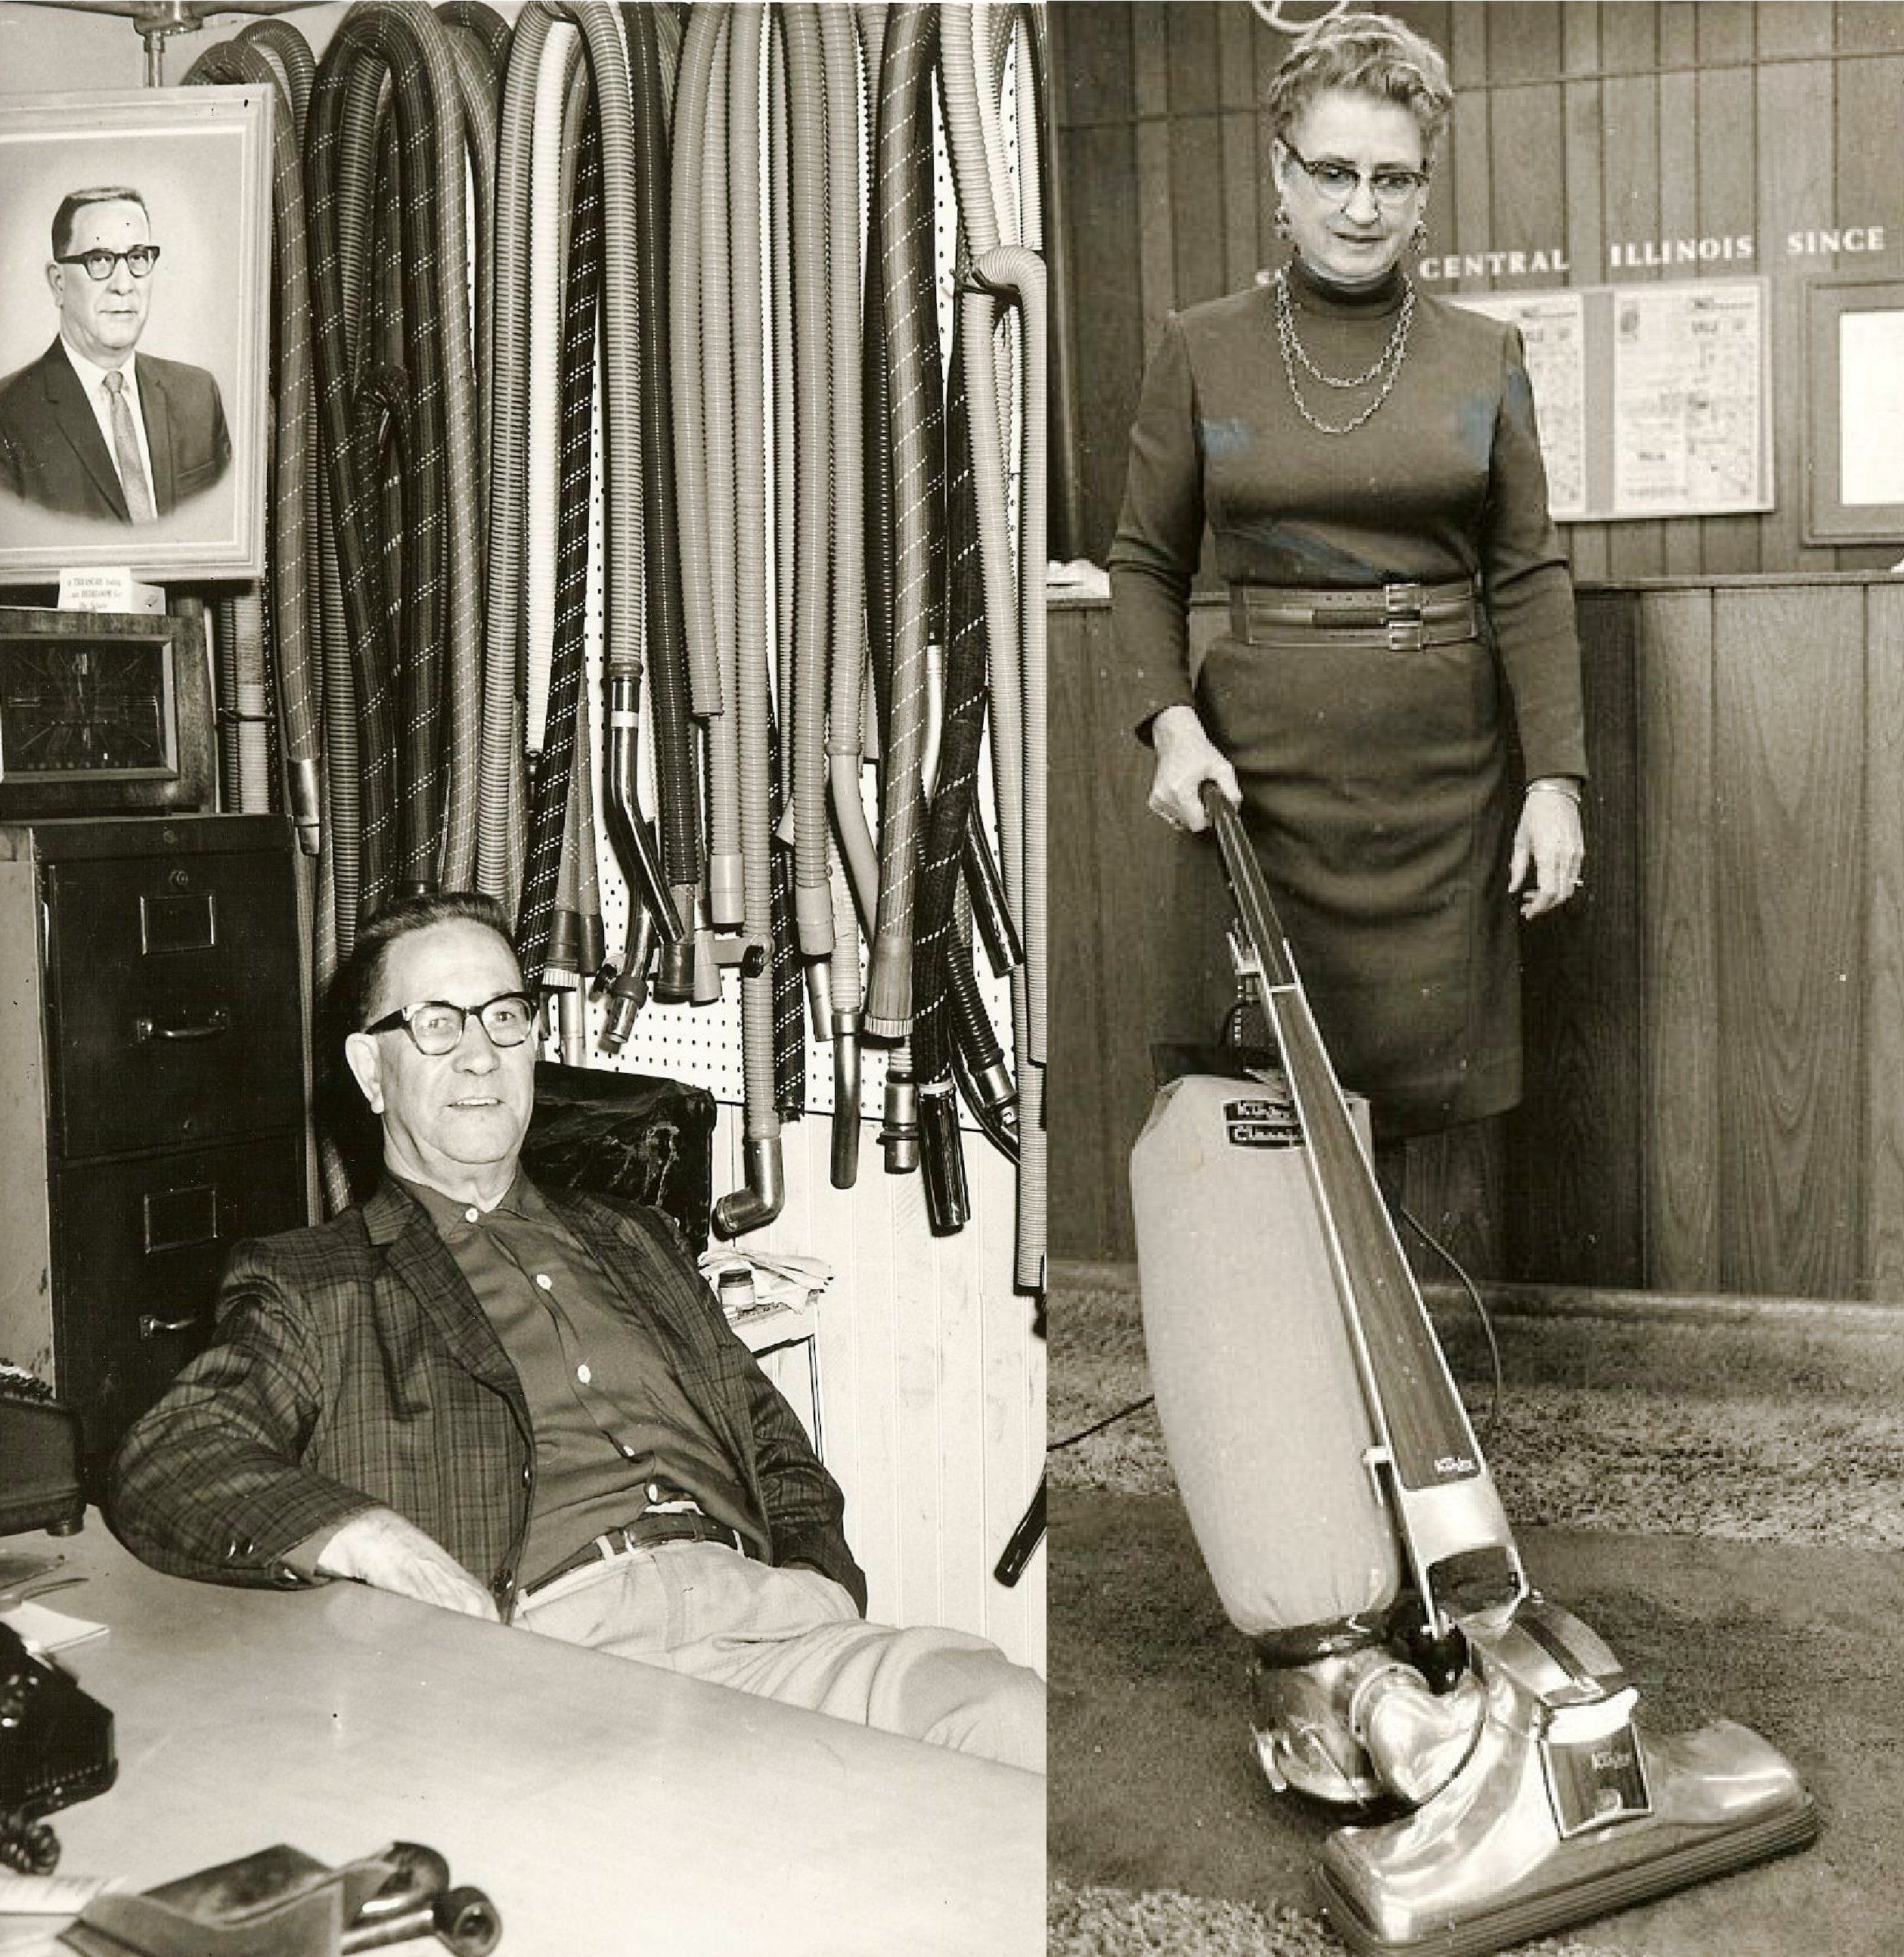 Ben And Gladys Nybakke Moved To Bloomington Illinois In 1932 And Started A Vacuum Business Bloomington Illinois Bloomington Vacuums